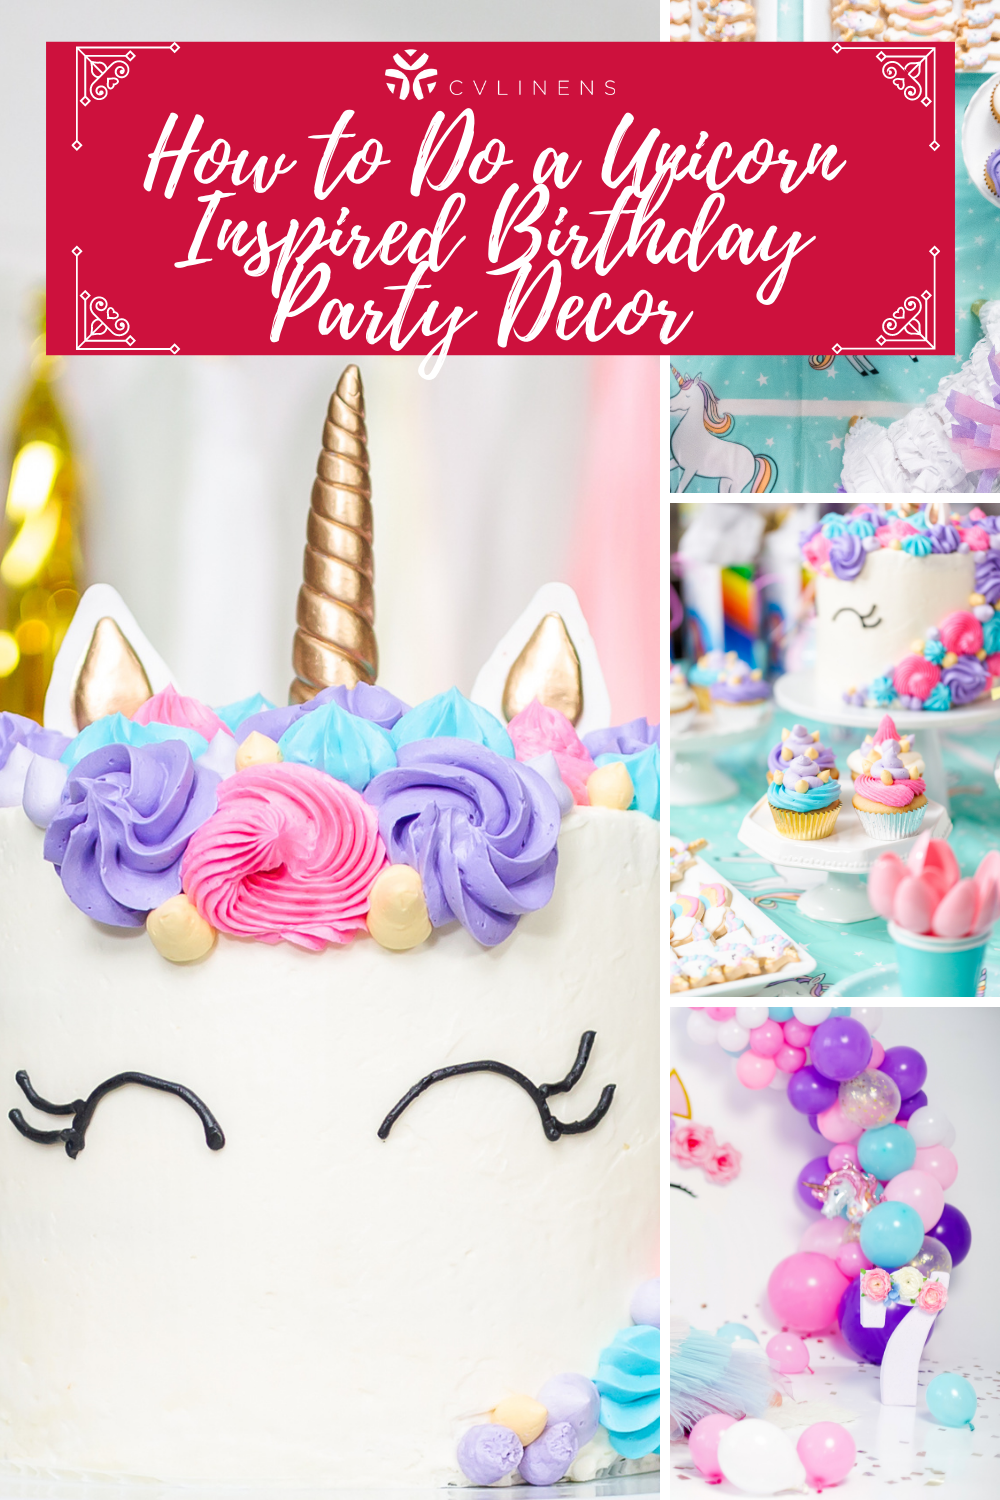 How to Do a Unicorn -Inspired Birthday Party Decor